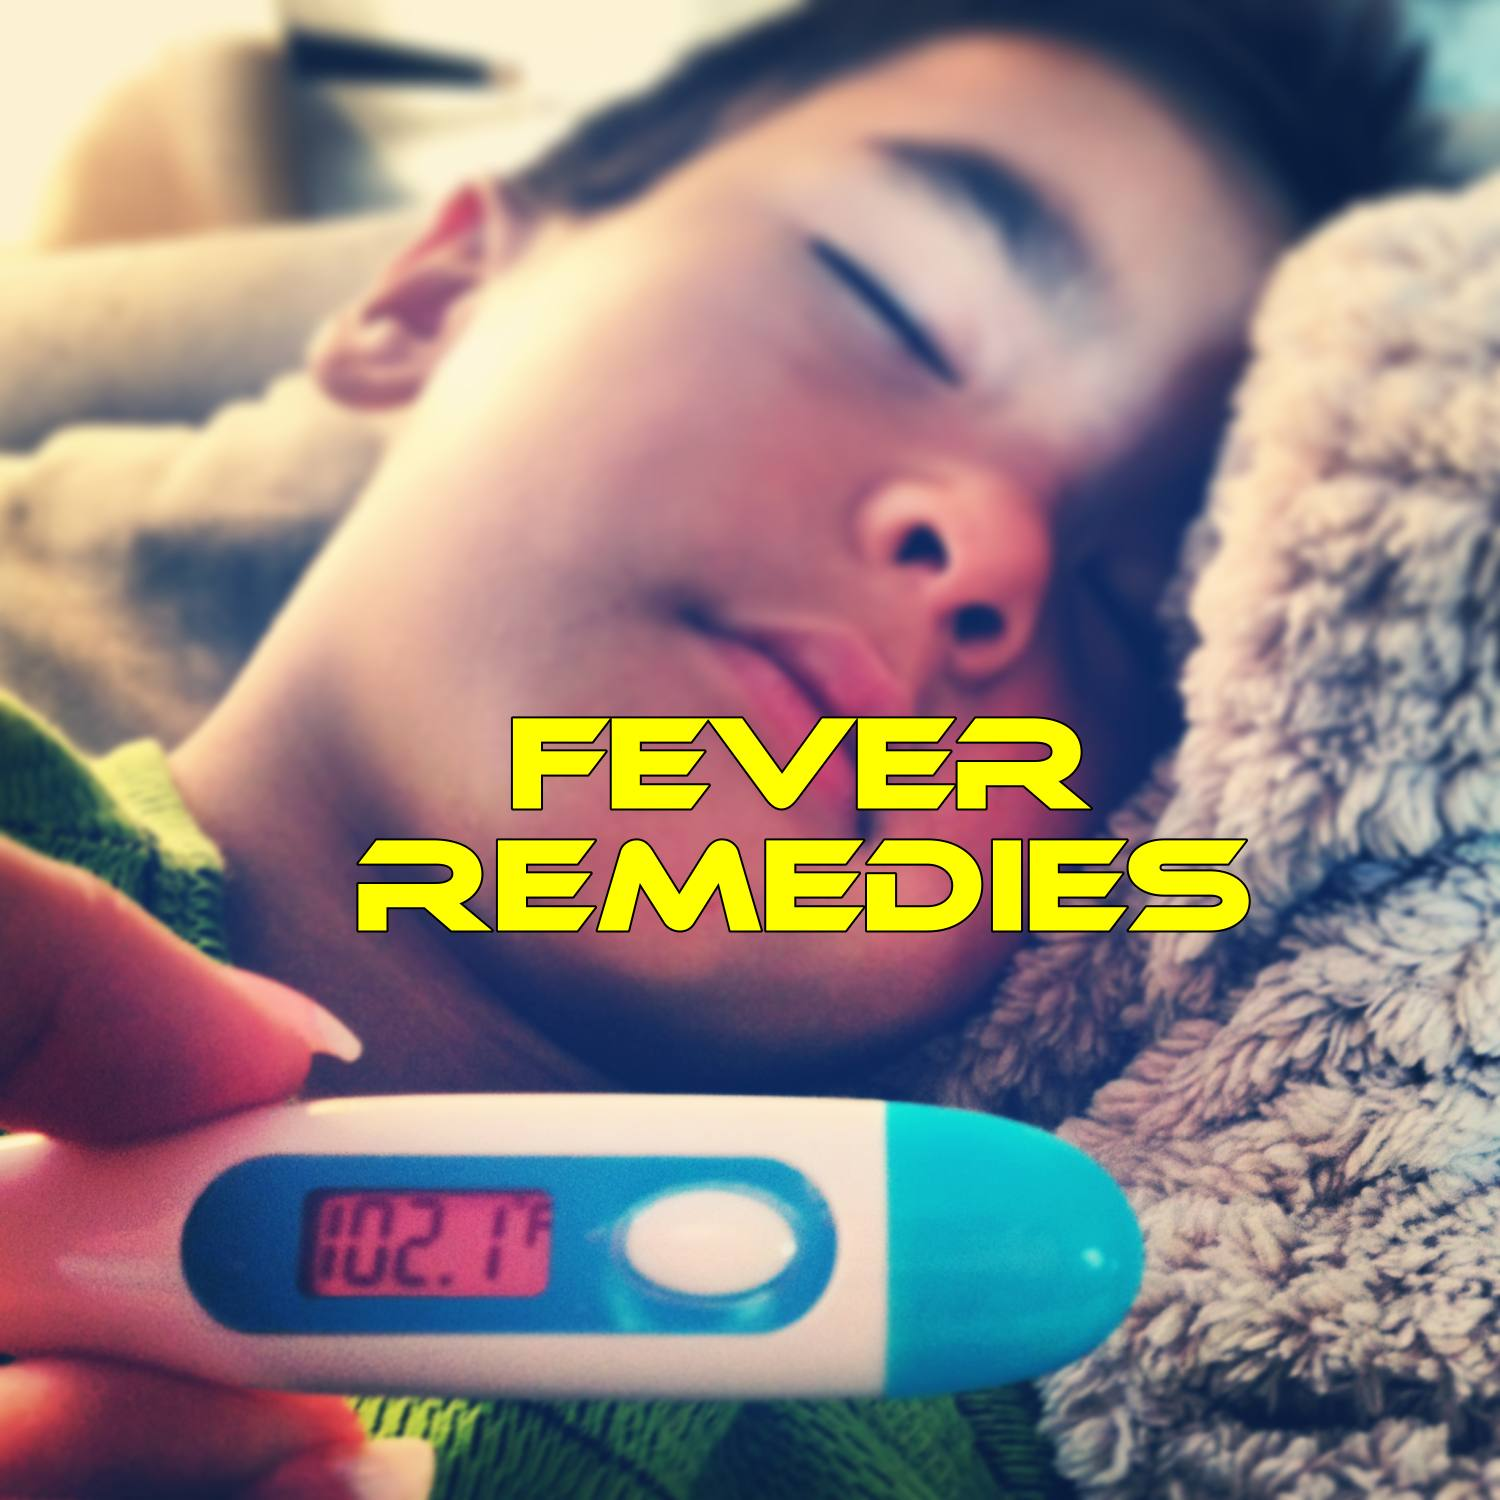 10 Home Remedies for Fever